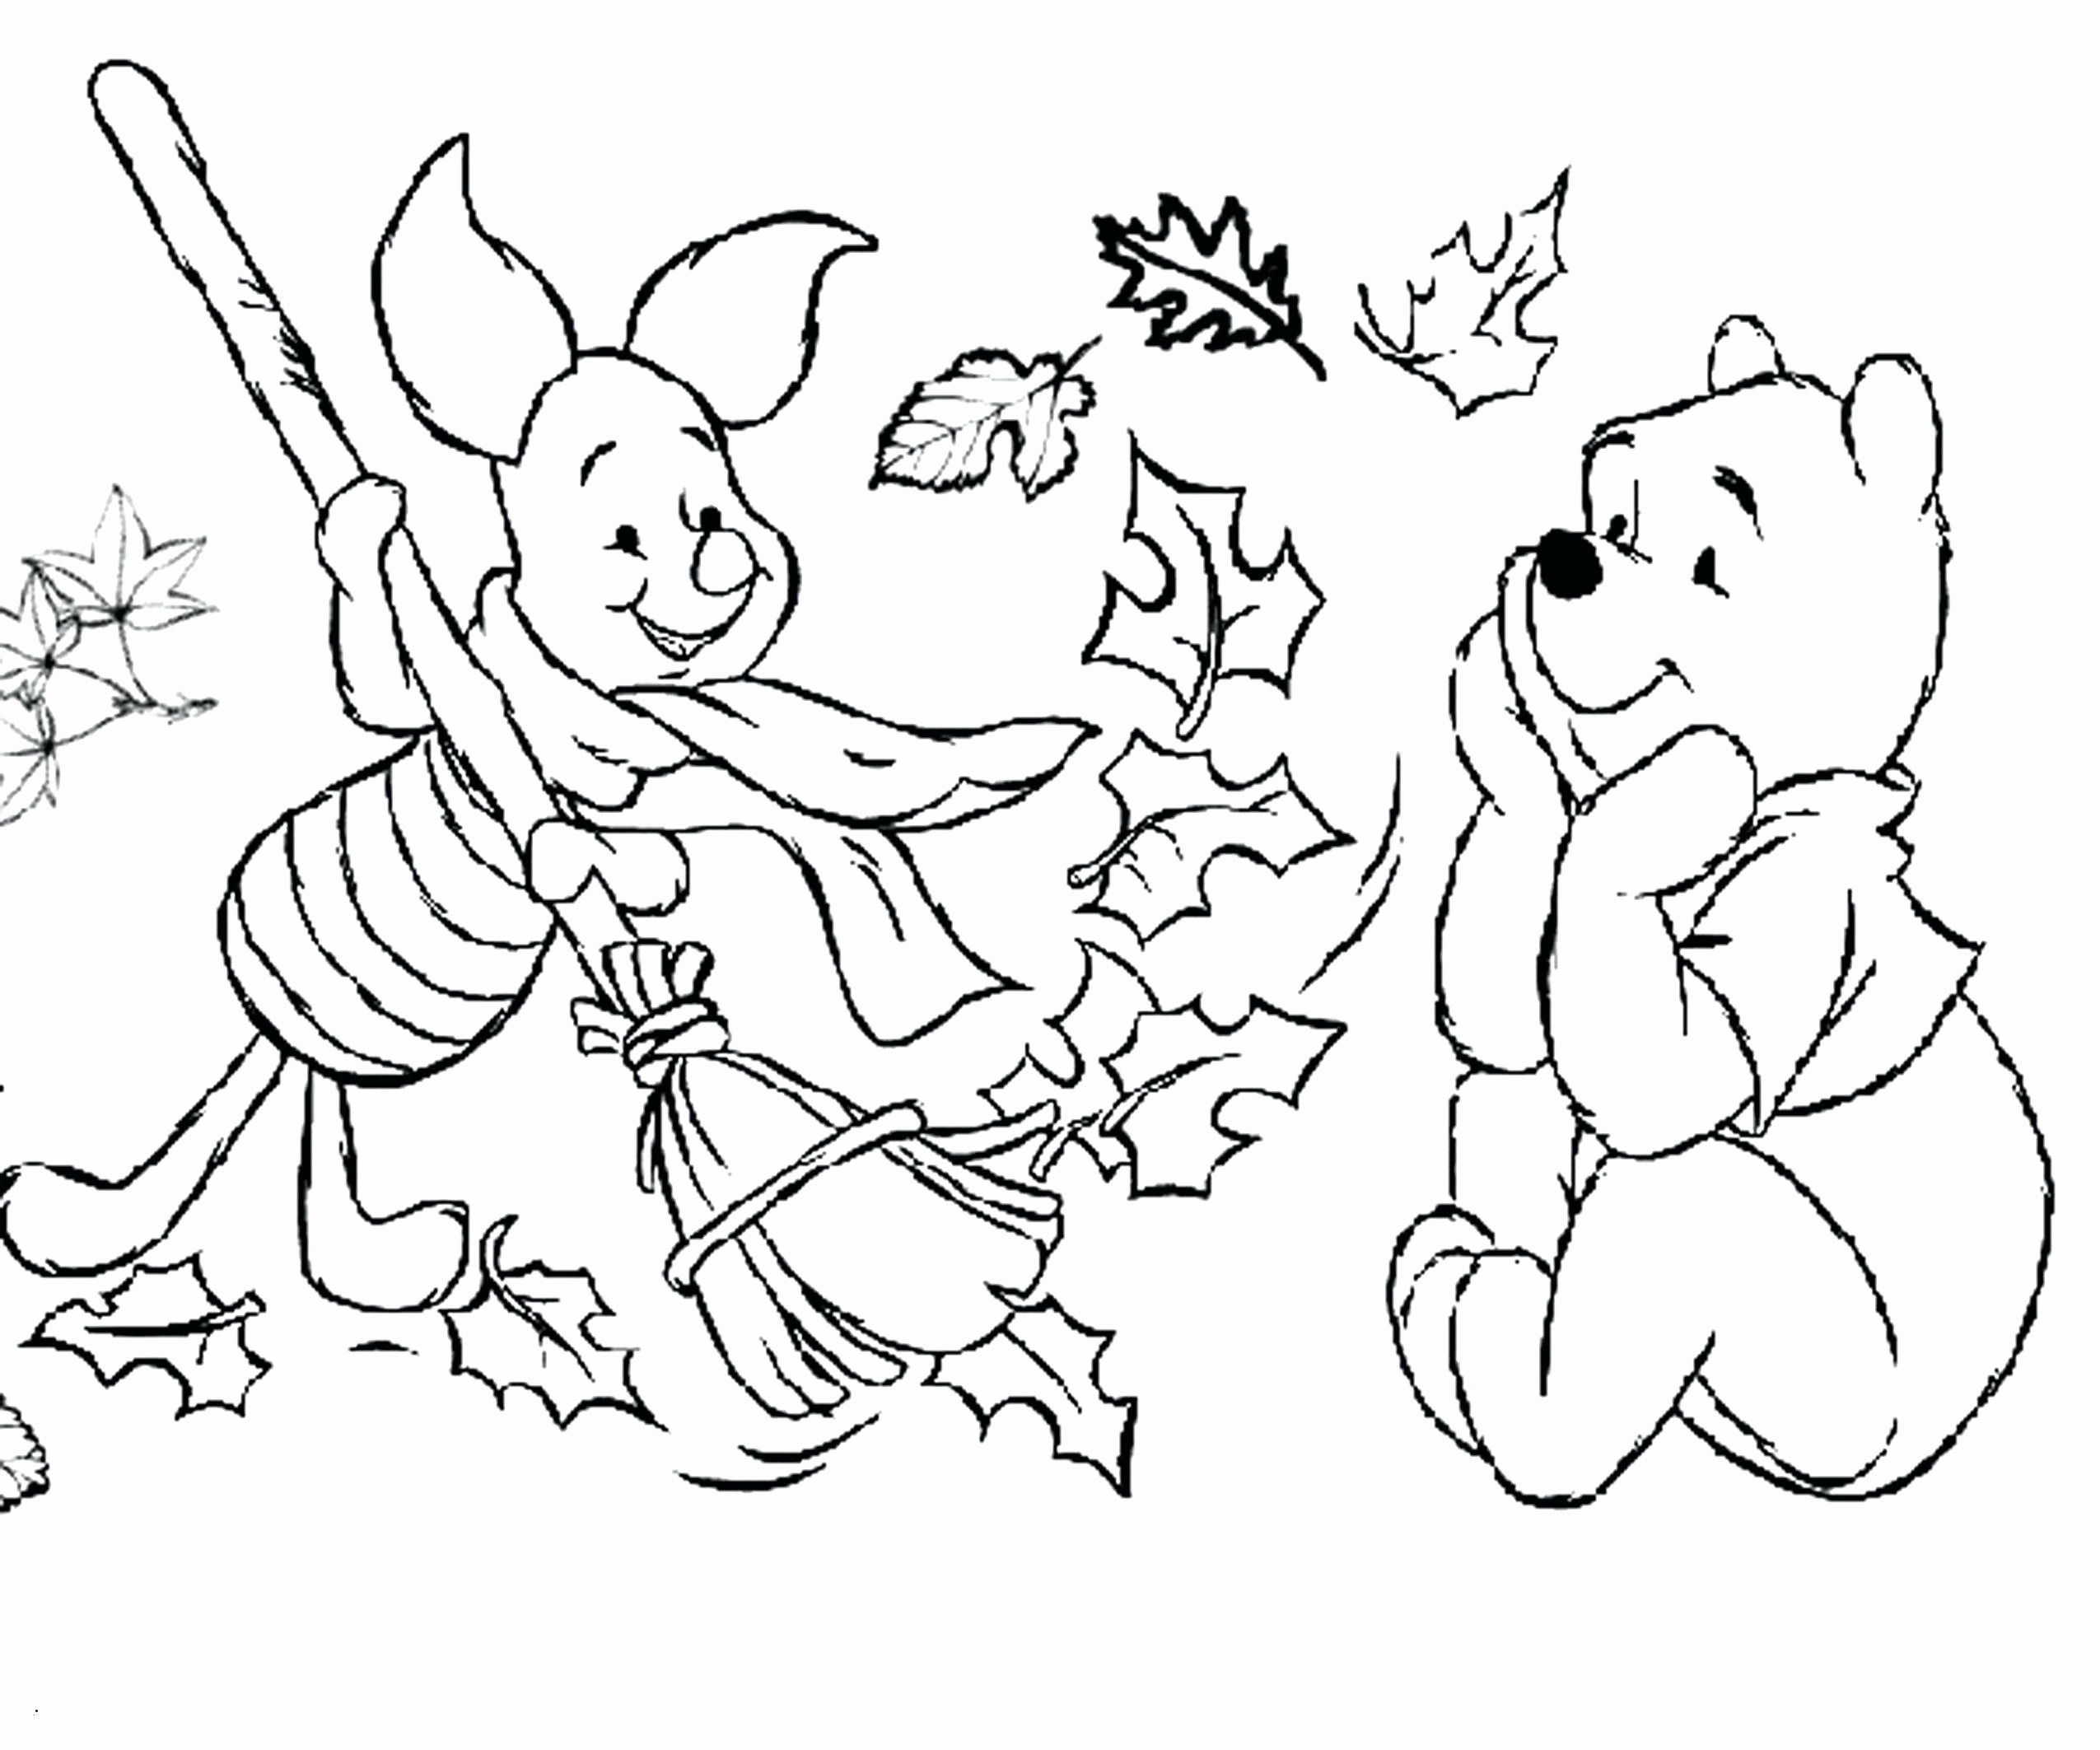 All About Me Coloring Pages All About Me Coloring Pages To And Print For Free Beginning Of